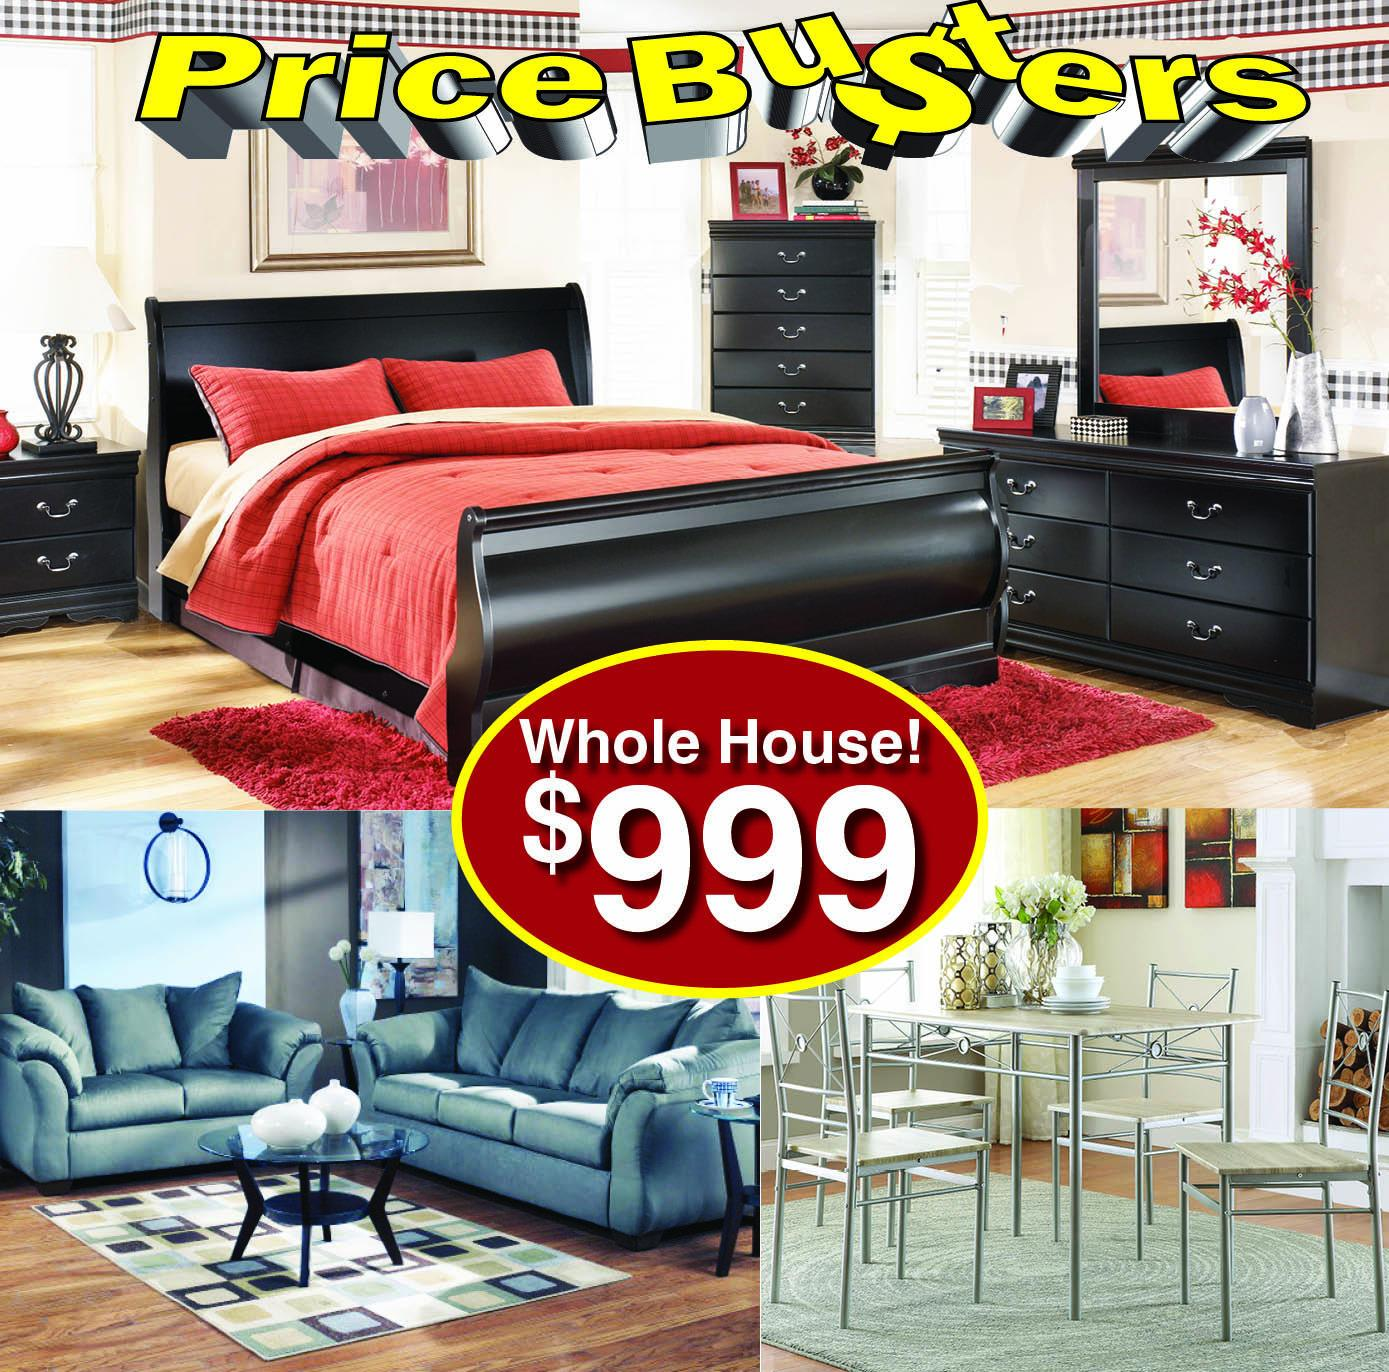 Www Furniturestore Com: Price Busters Discount Furniture